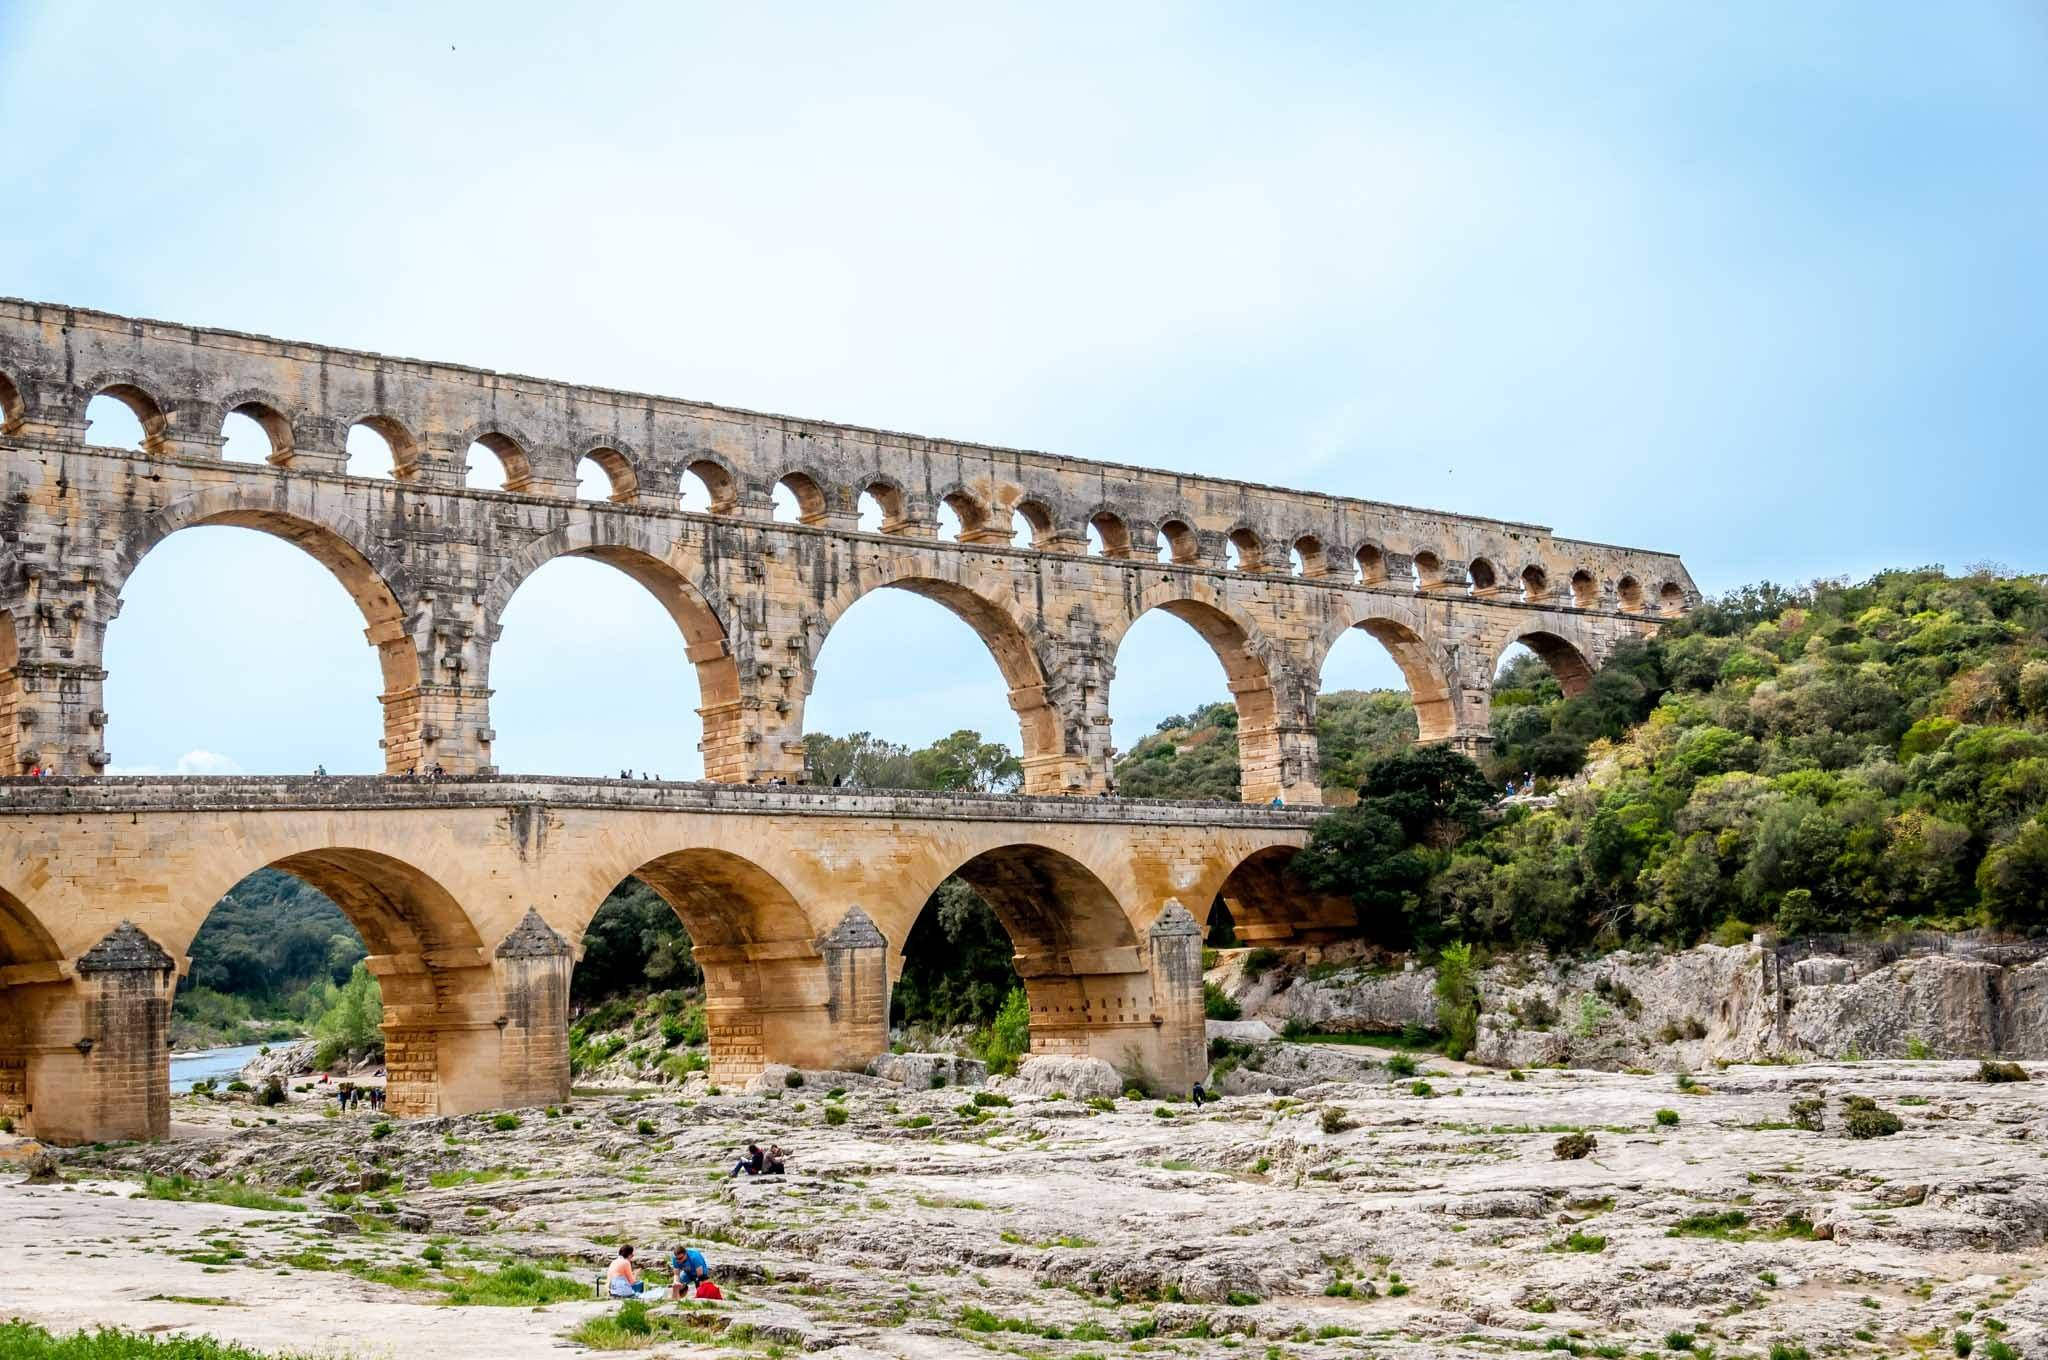 Stone arches of an ancient aqueduct